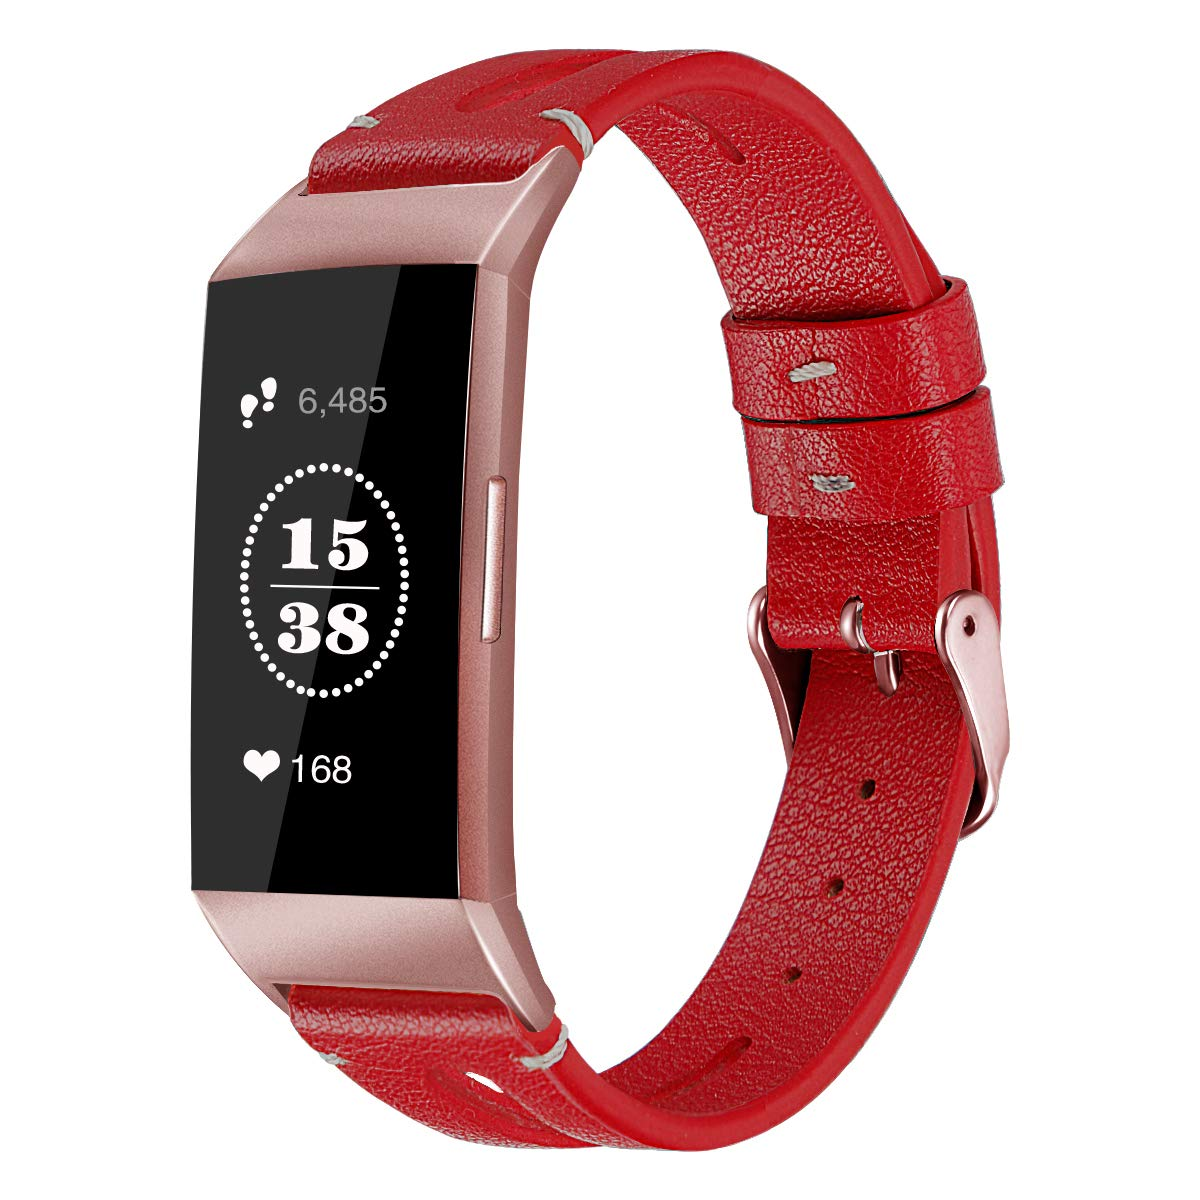 EverSnows Leather Bands Compatible Fitbit Charge 3 /& Charge 3 SE Genuine Leather Band with Breathable Hole Replacement for Fitbit Charge 3 Large Small